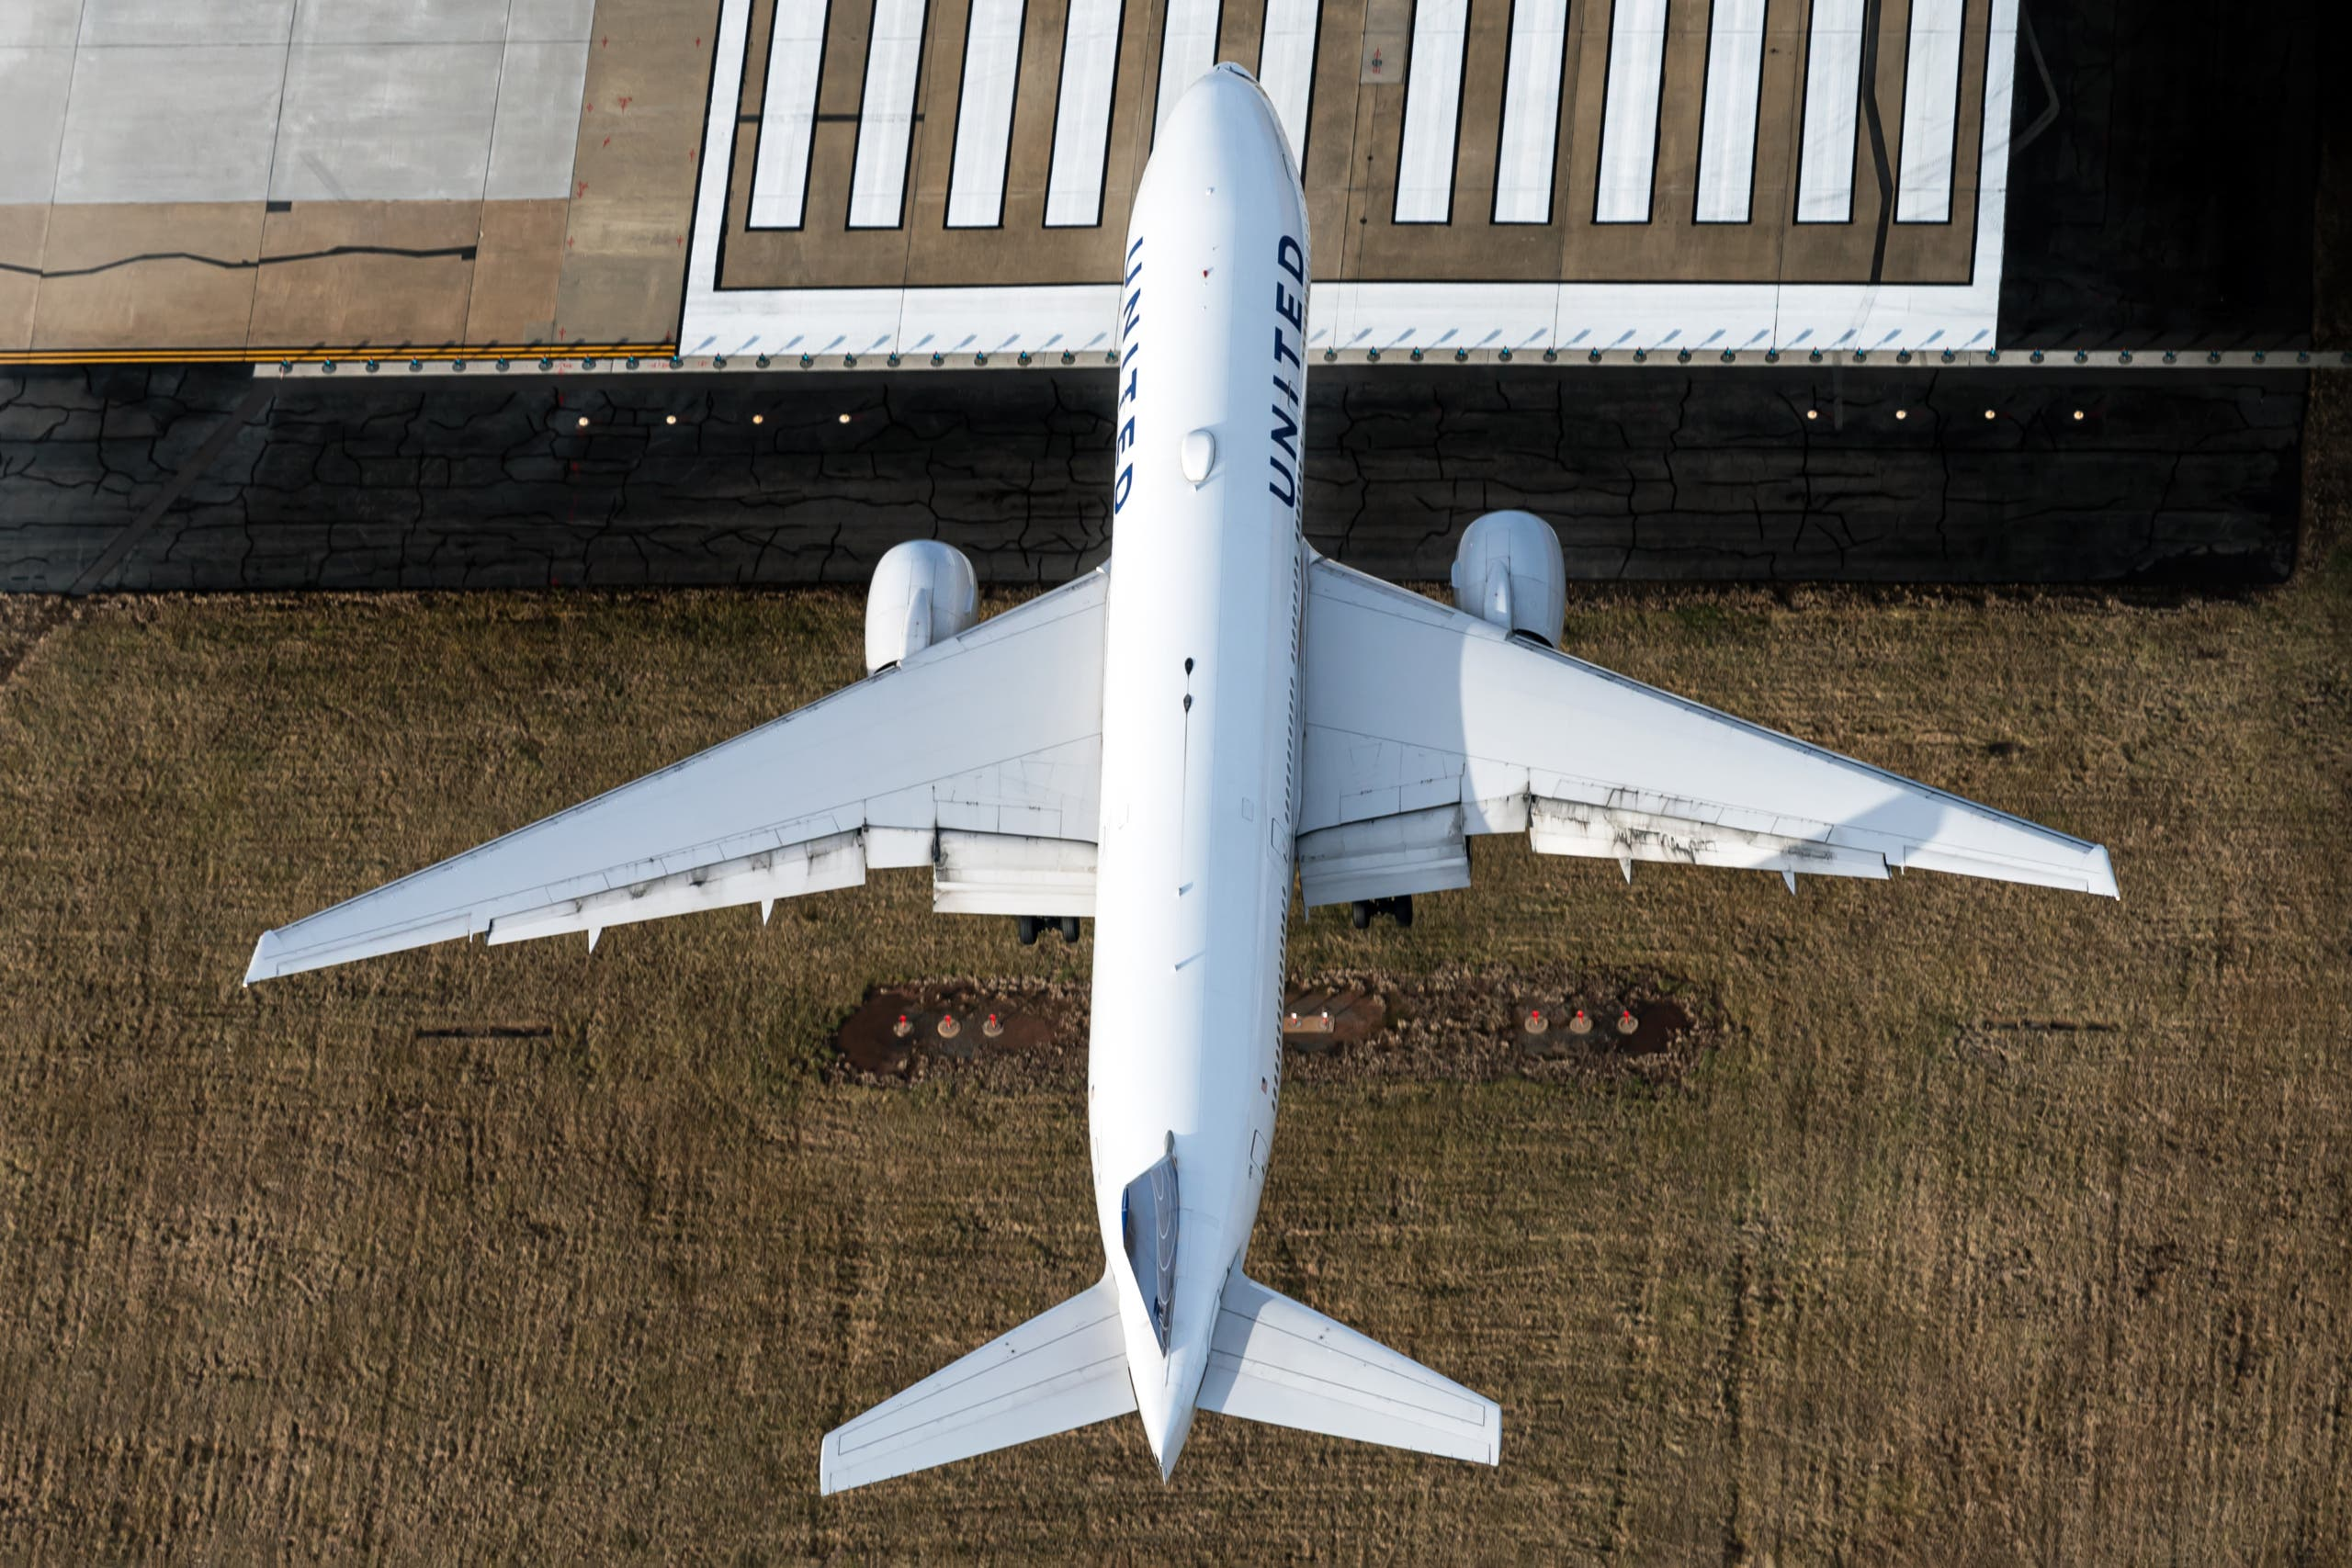 United Airlines' PW Powered Boeing 777 May Be Grounded Until 2022